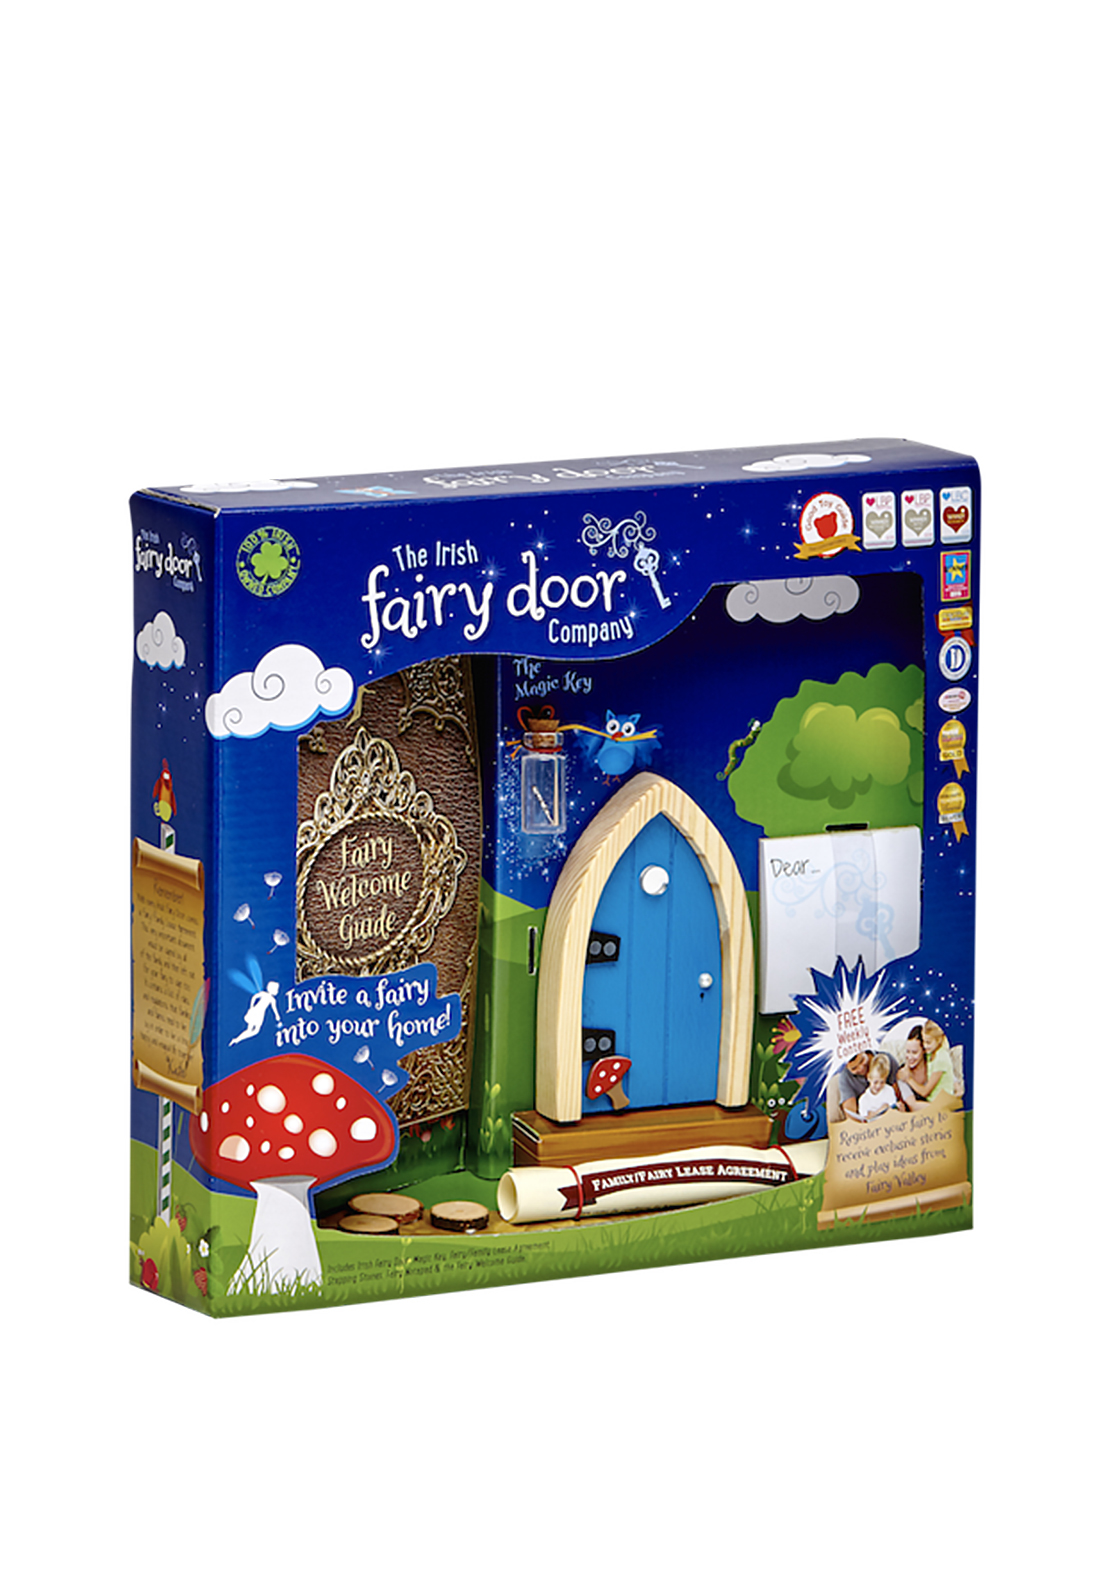 The irish fairy door company arched fairy door blue for The irish fairy door company facebook